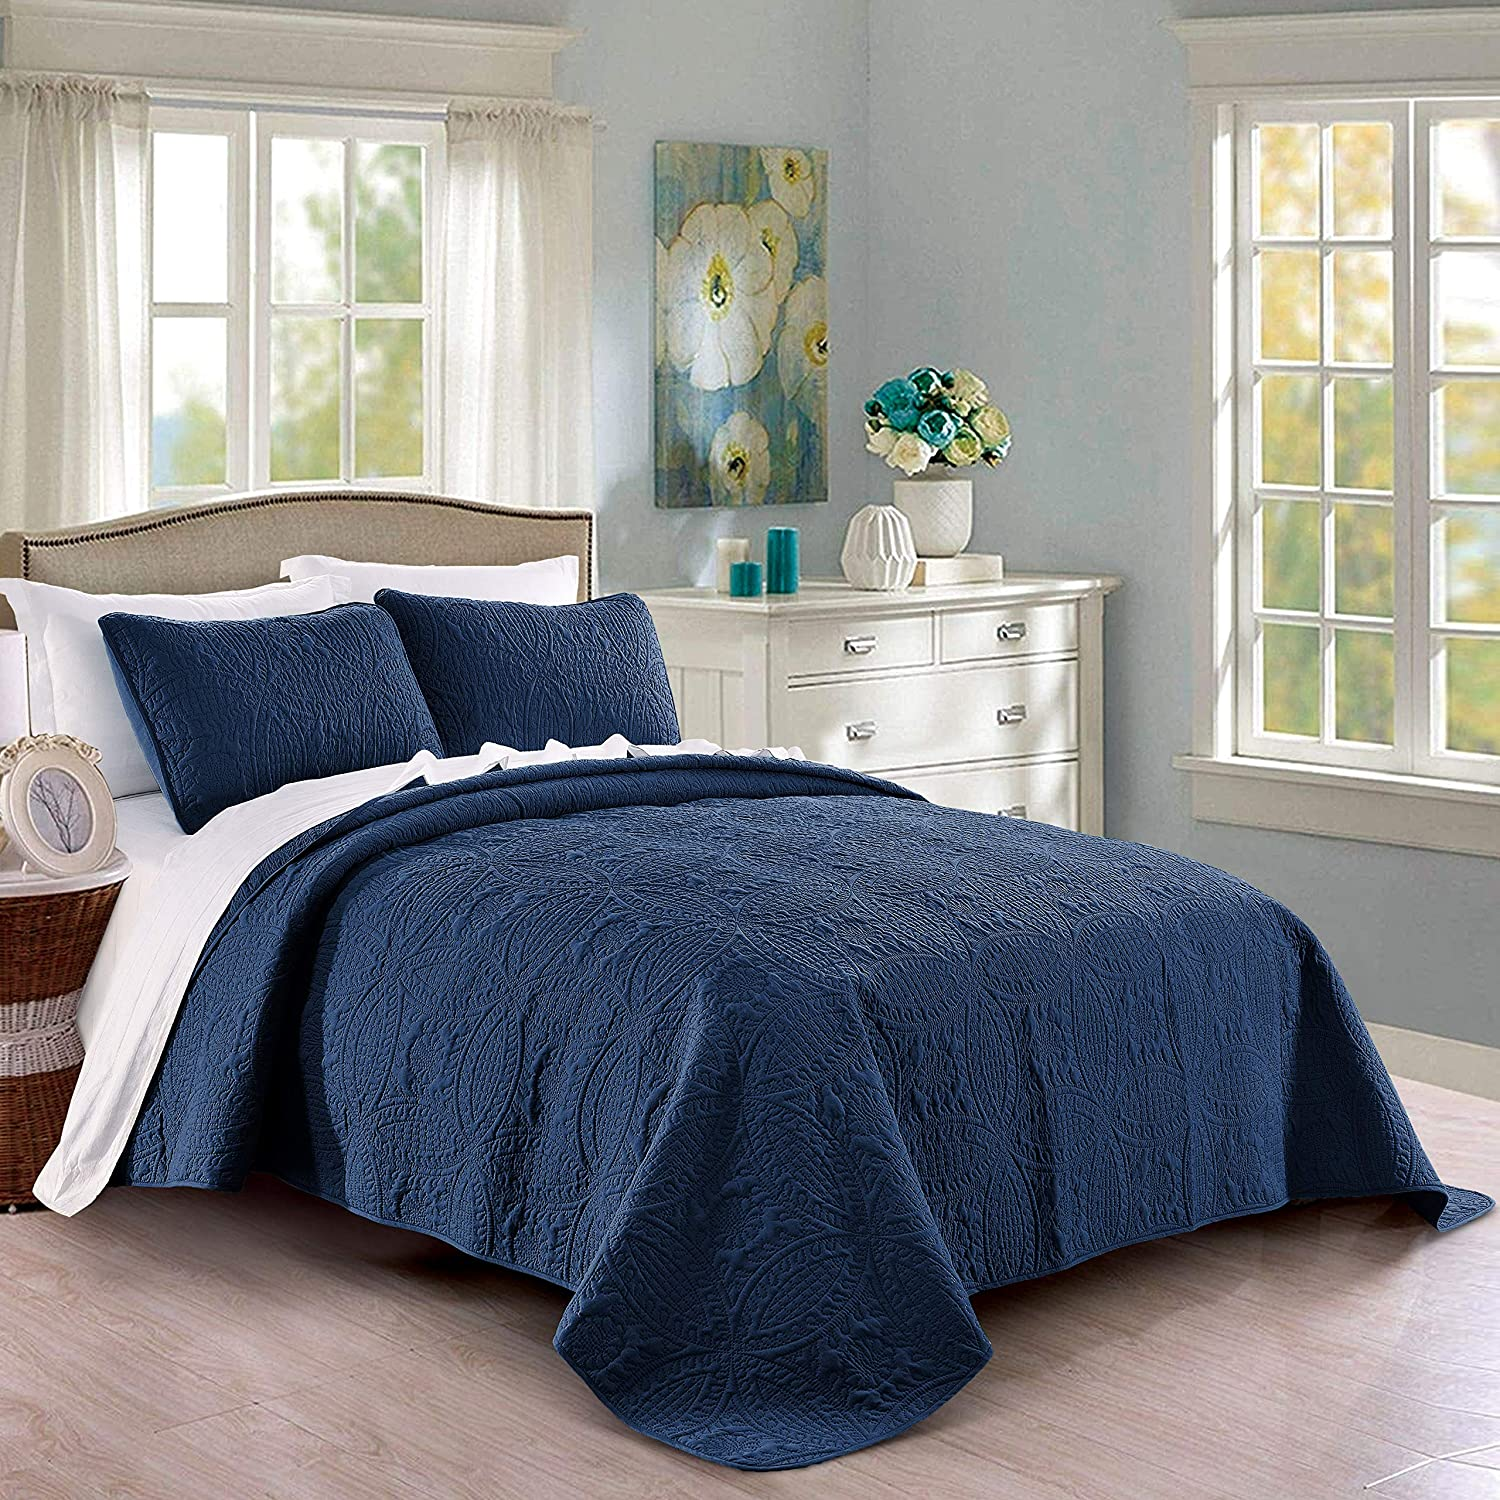 Quilt Set Outlet ☆ Free Shipping Full Queen High quality new Size Navy - Oversized Micr Soft Bedspread